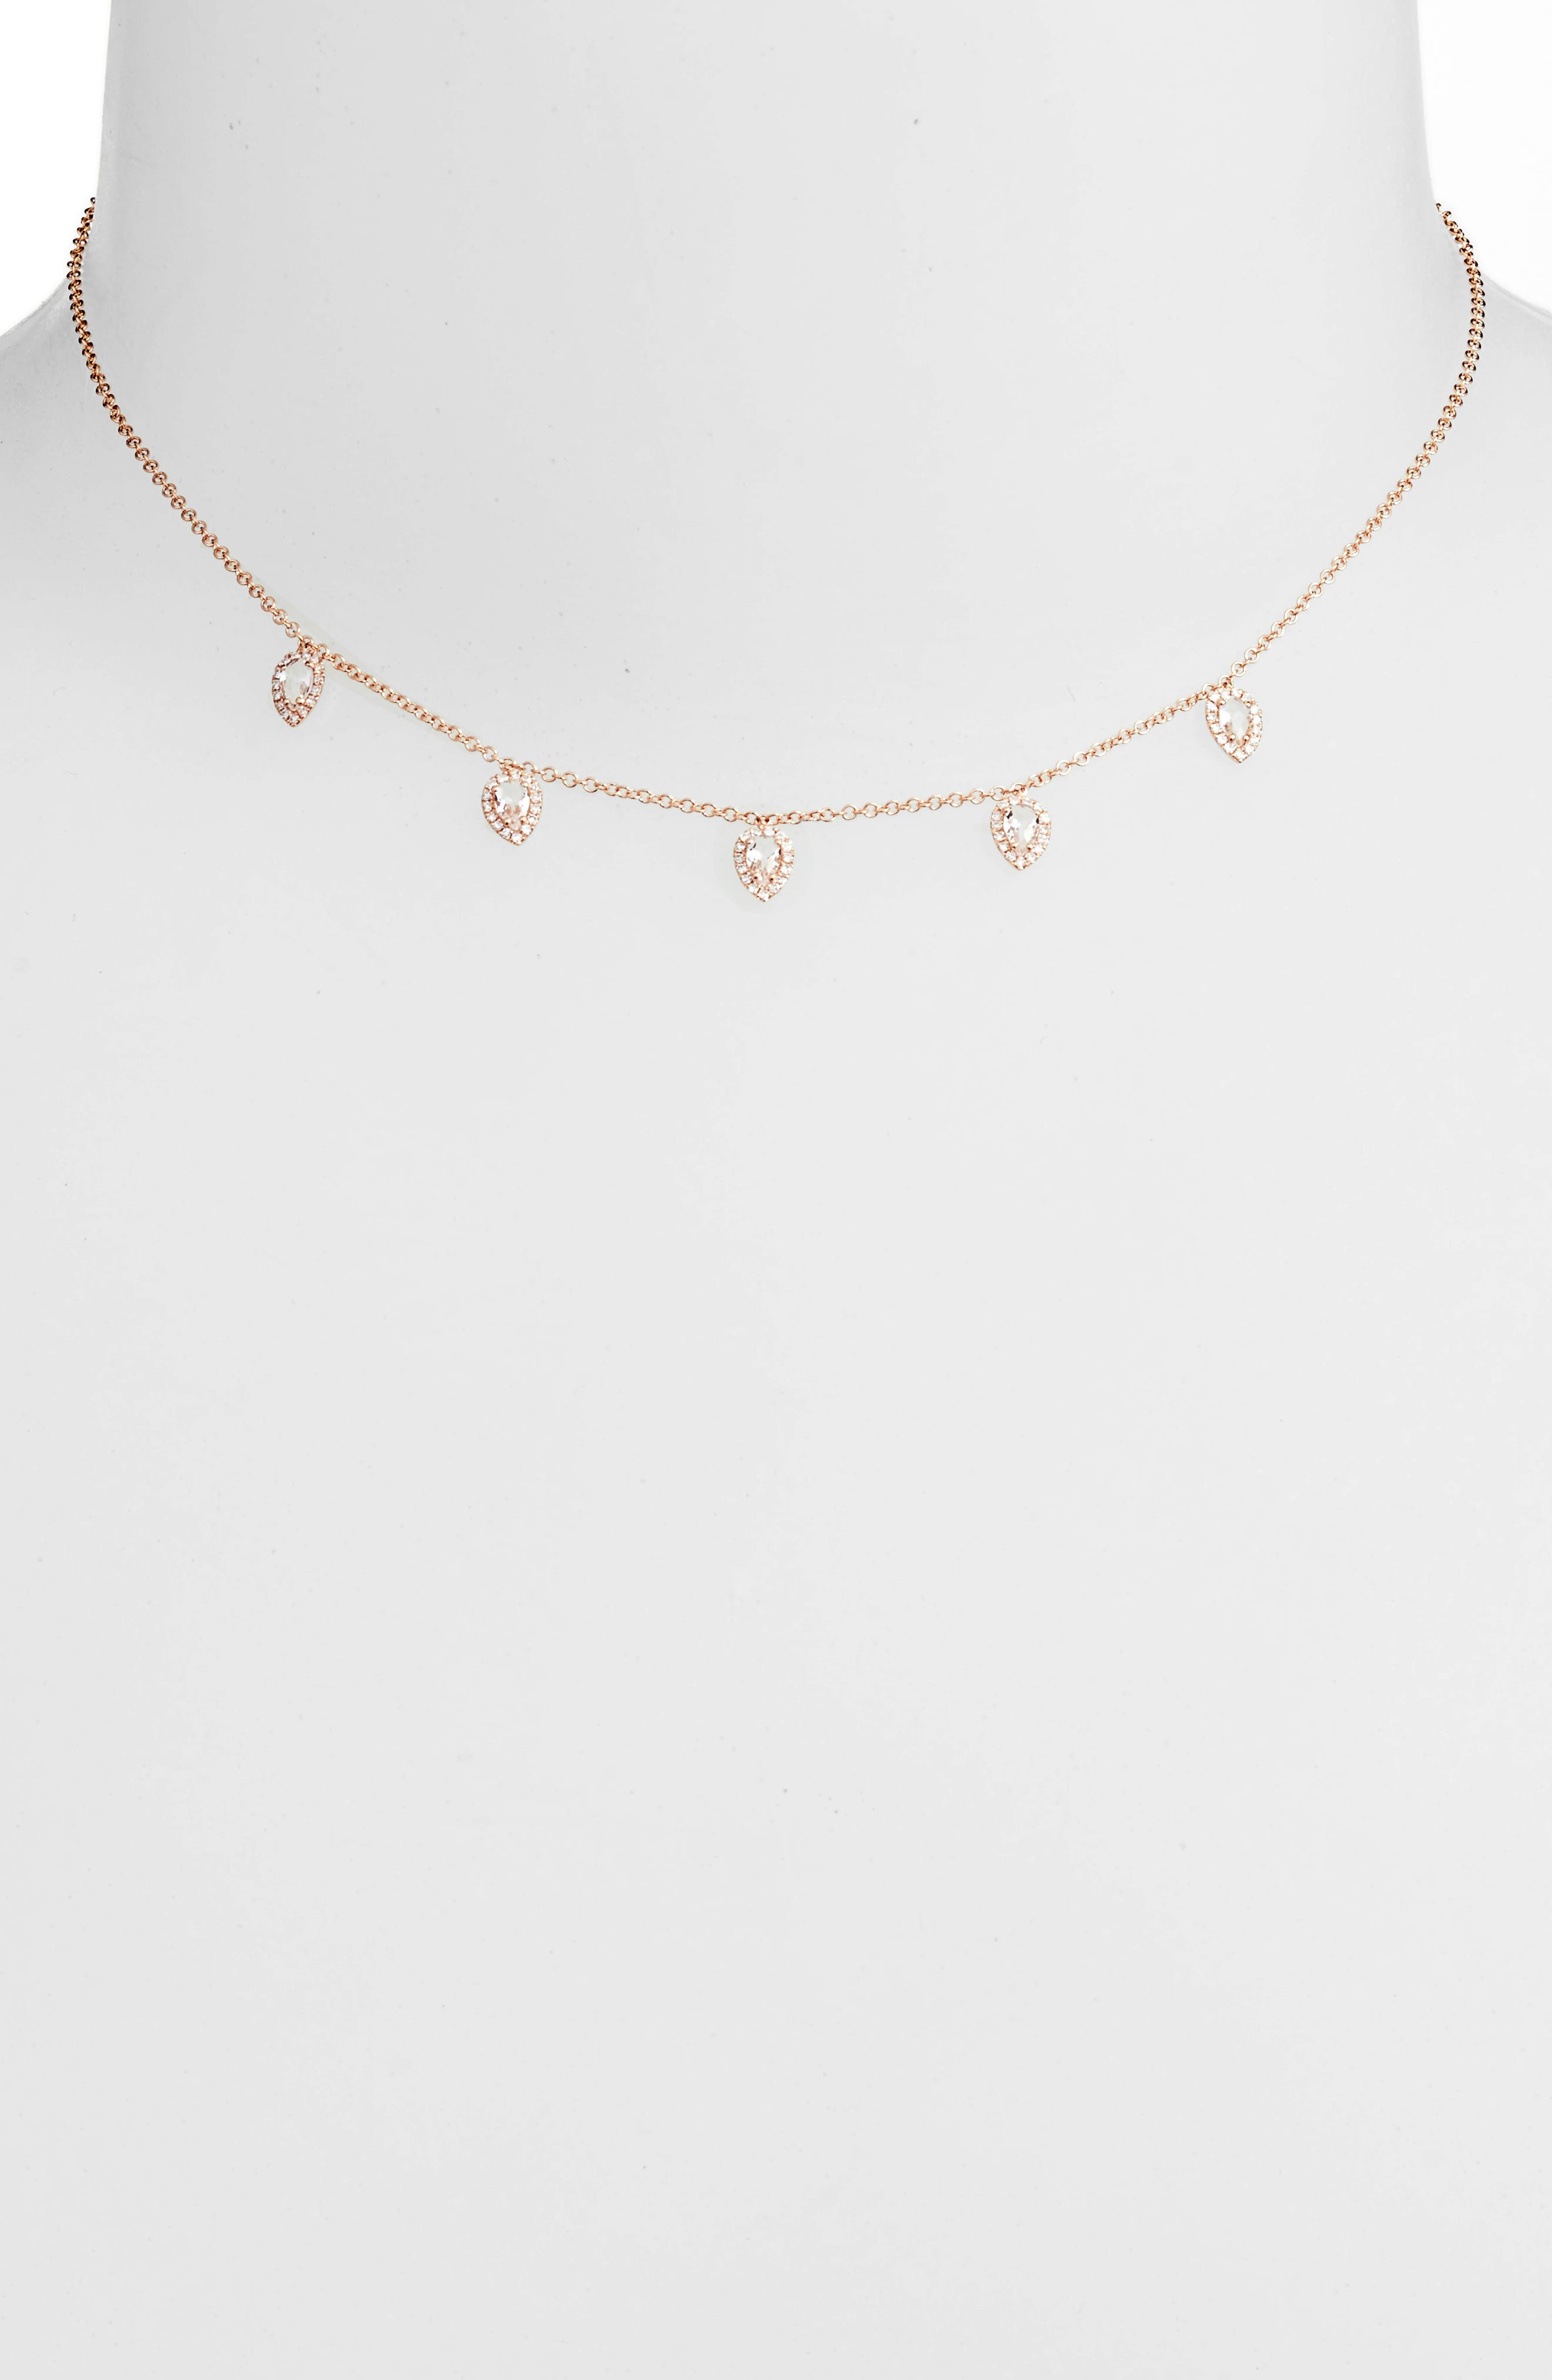 Diamond Collar Necklace,                             Main thumbnail 1, color,                             Rose Gold